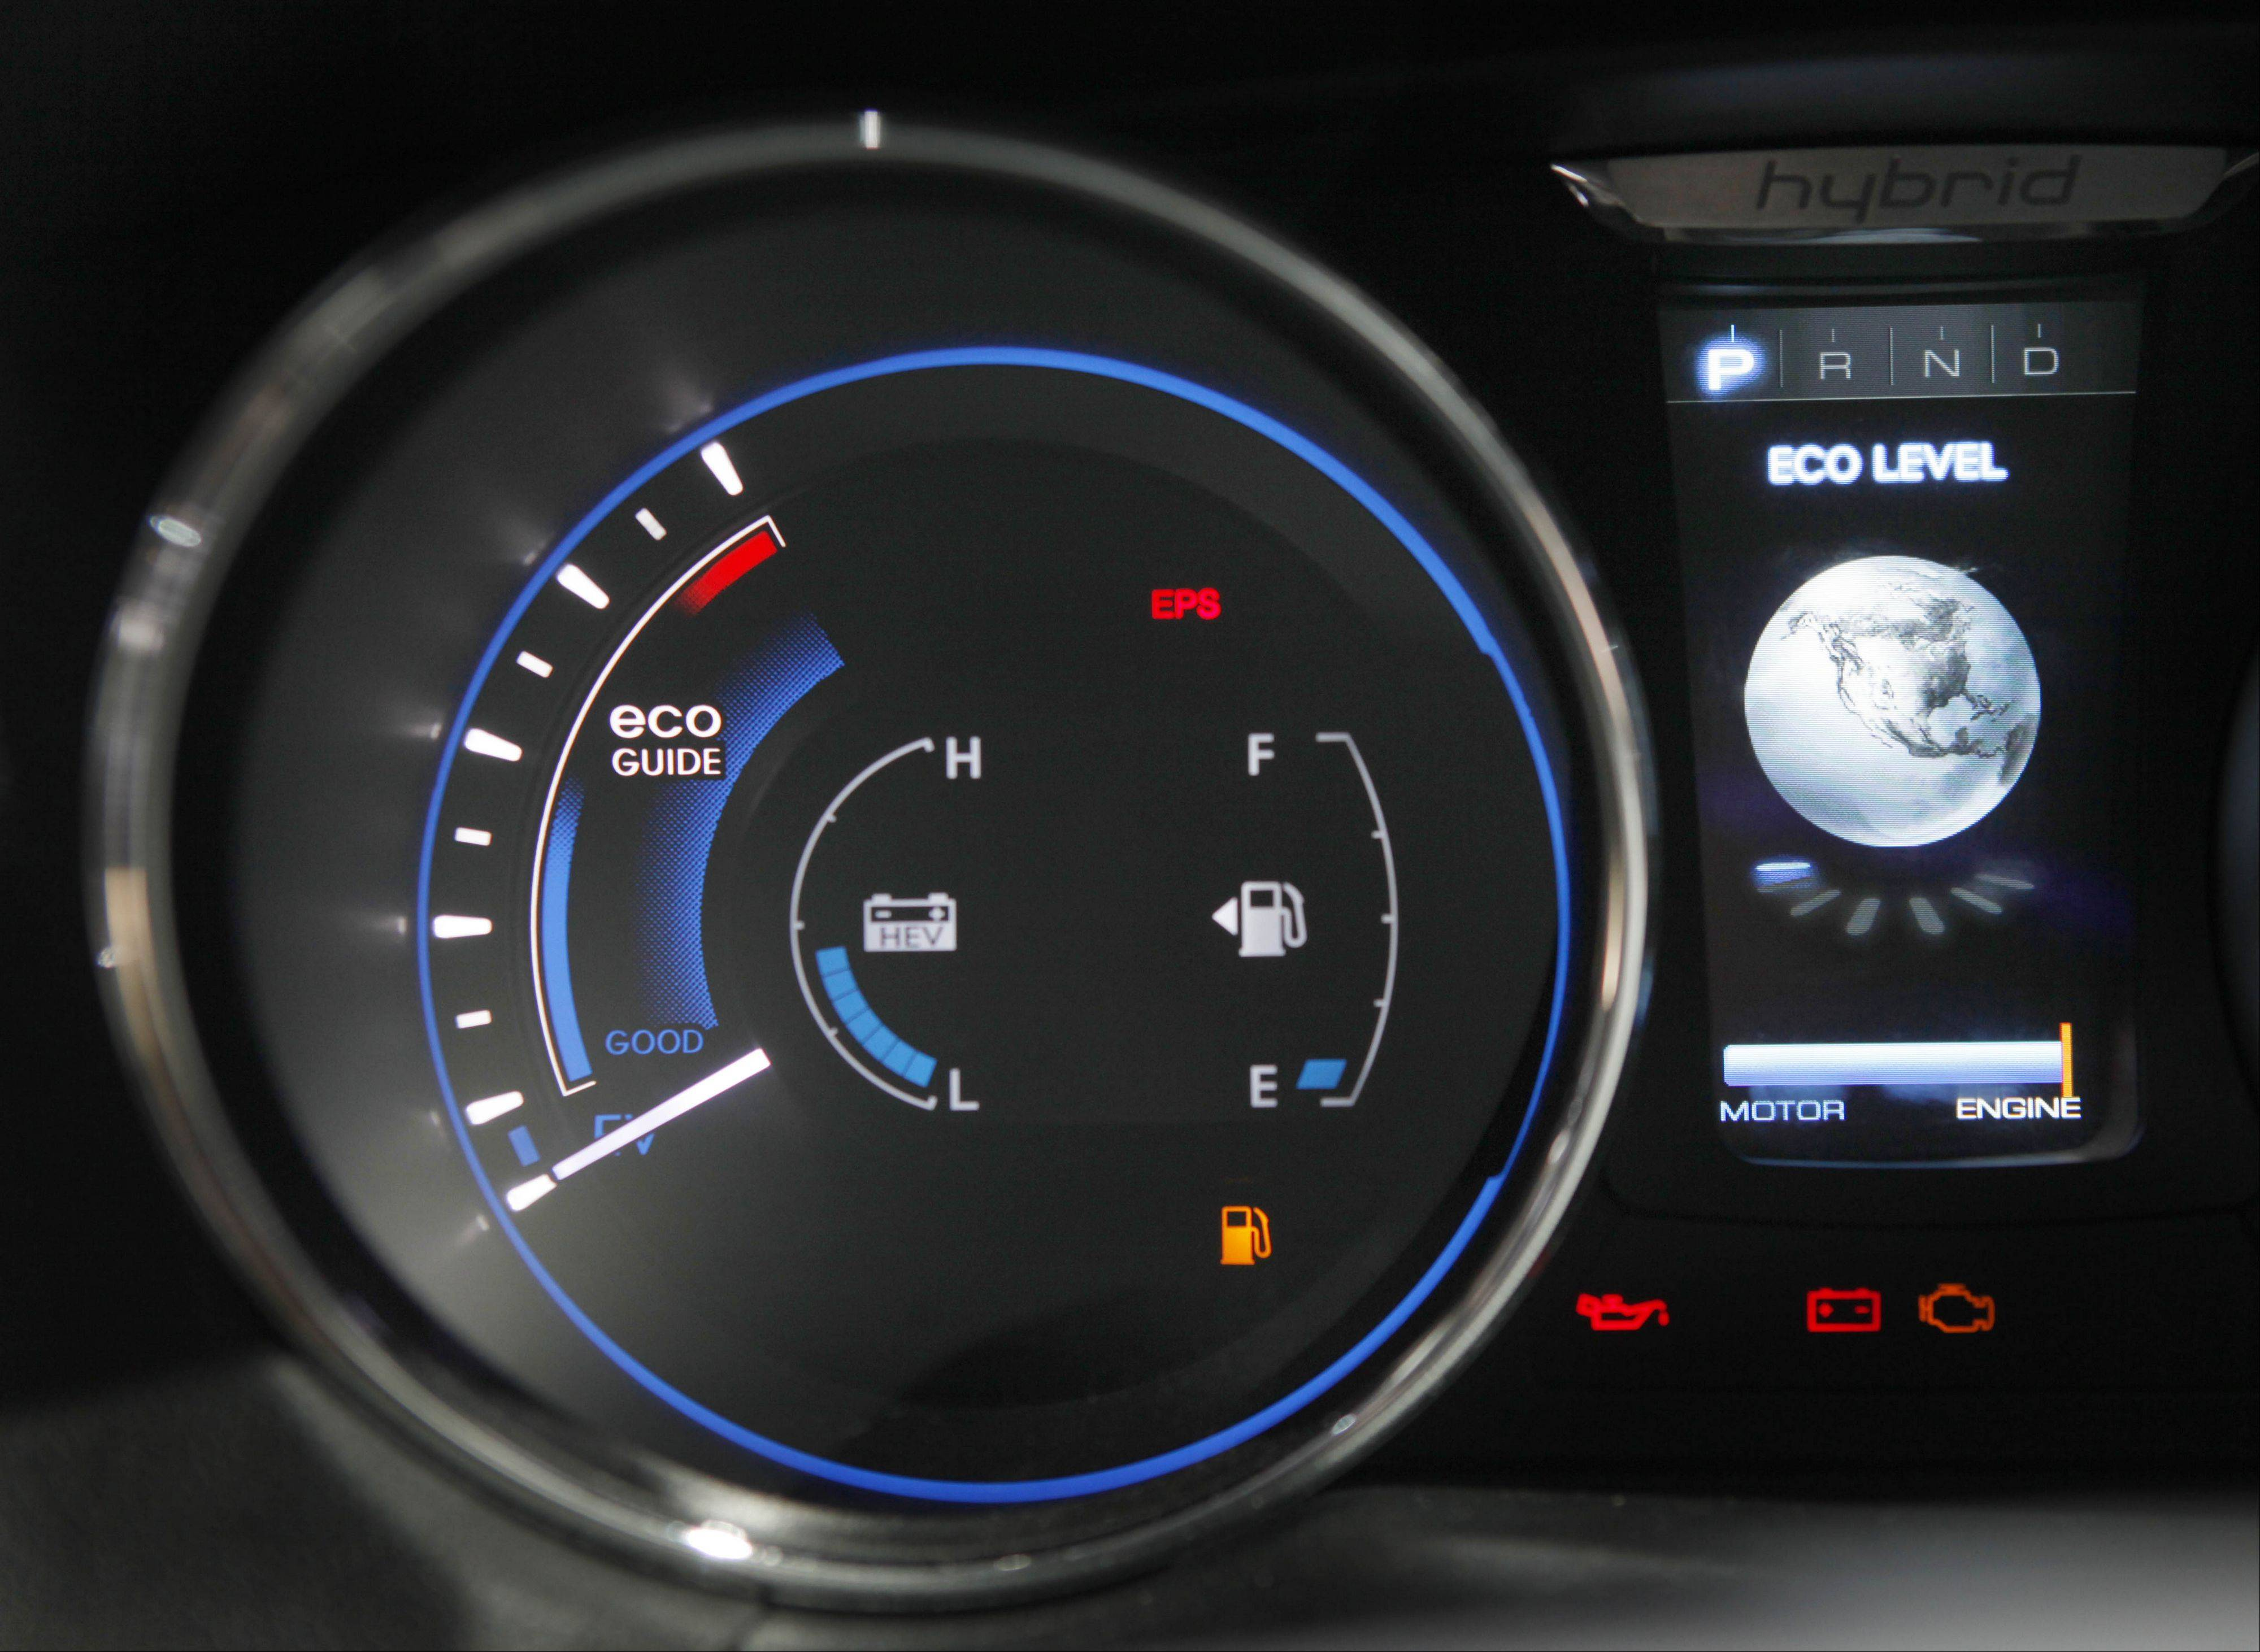 The dashboard on the new Sonata Hybrid displays not only gas levels but economy and electric motor information at the New York International Auto Show in New York in 2010. All of it contributes to the true gas mileage.